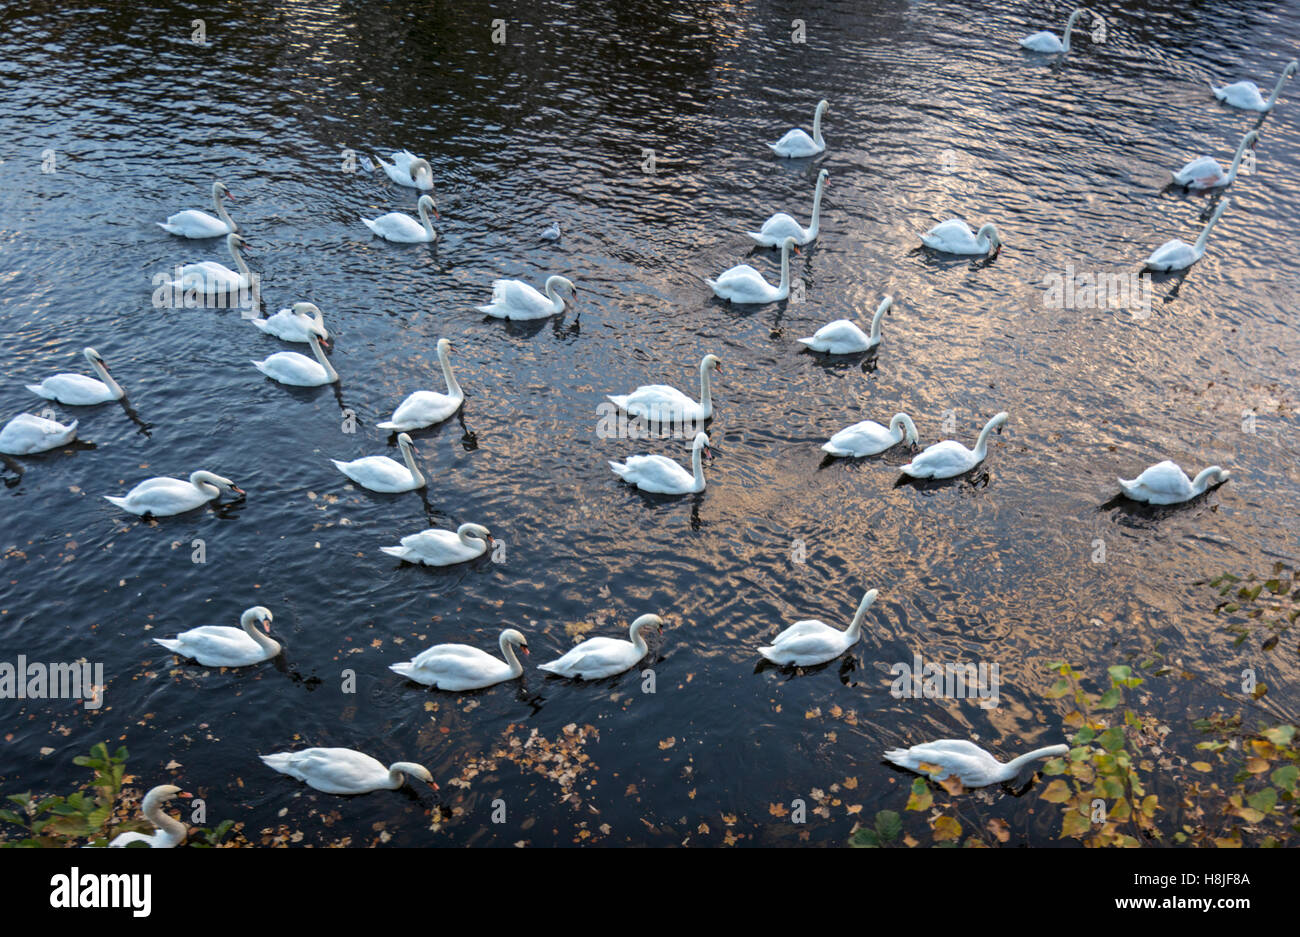 Mute Swans on the river Severn, Worcester, Worcestershire, England, UK - Stock Image